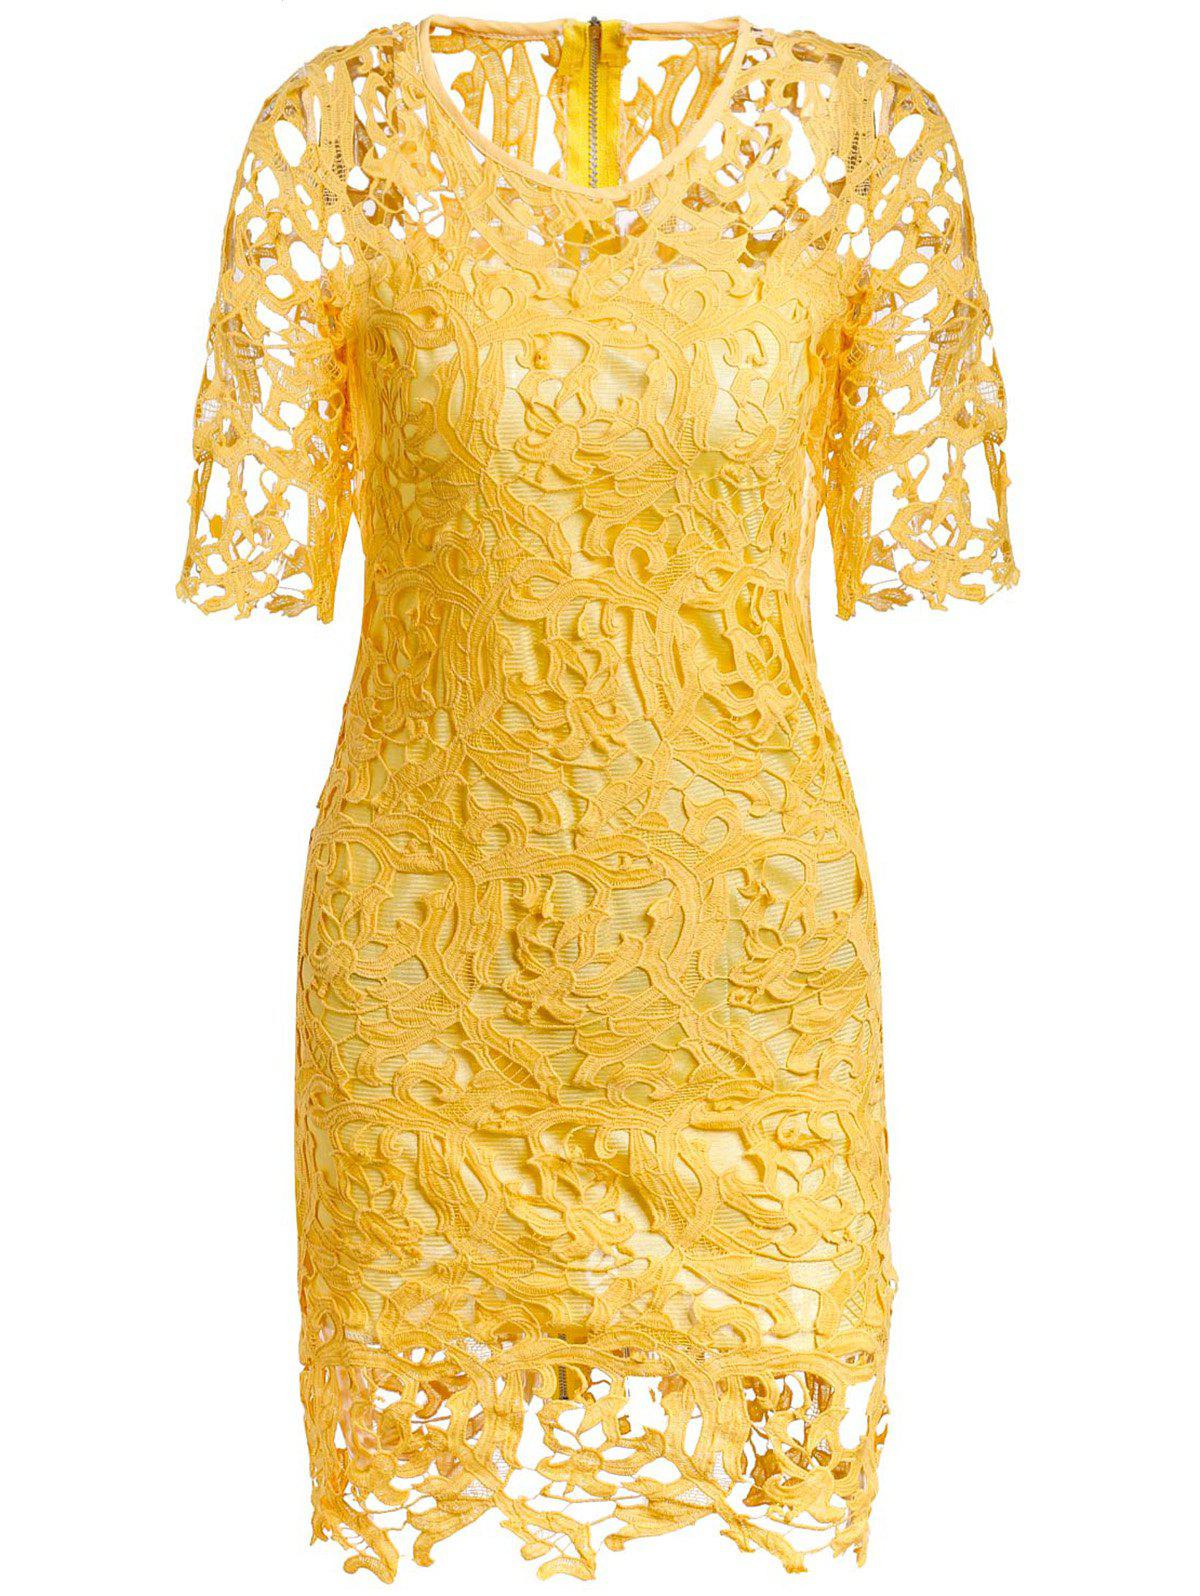 Round Neck 1/2 Sleeve Hollow Out Spliced Lace Women's Dress - YELLOW M